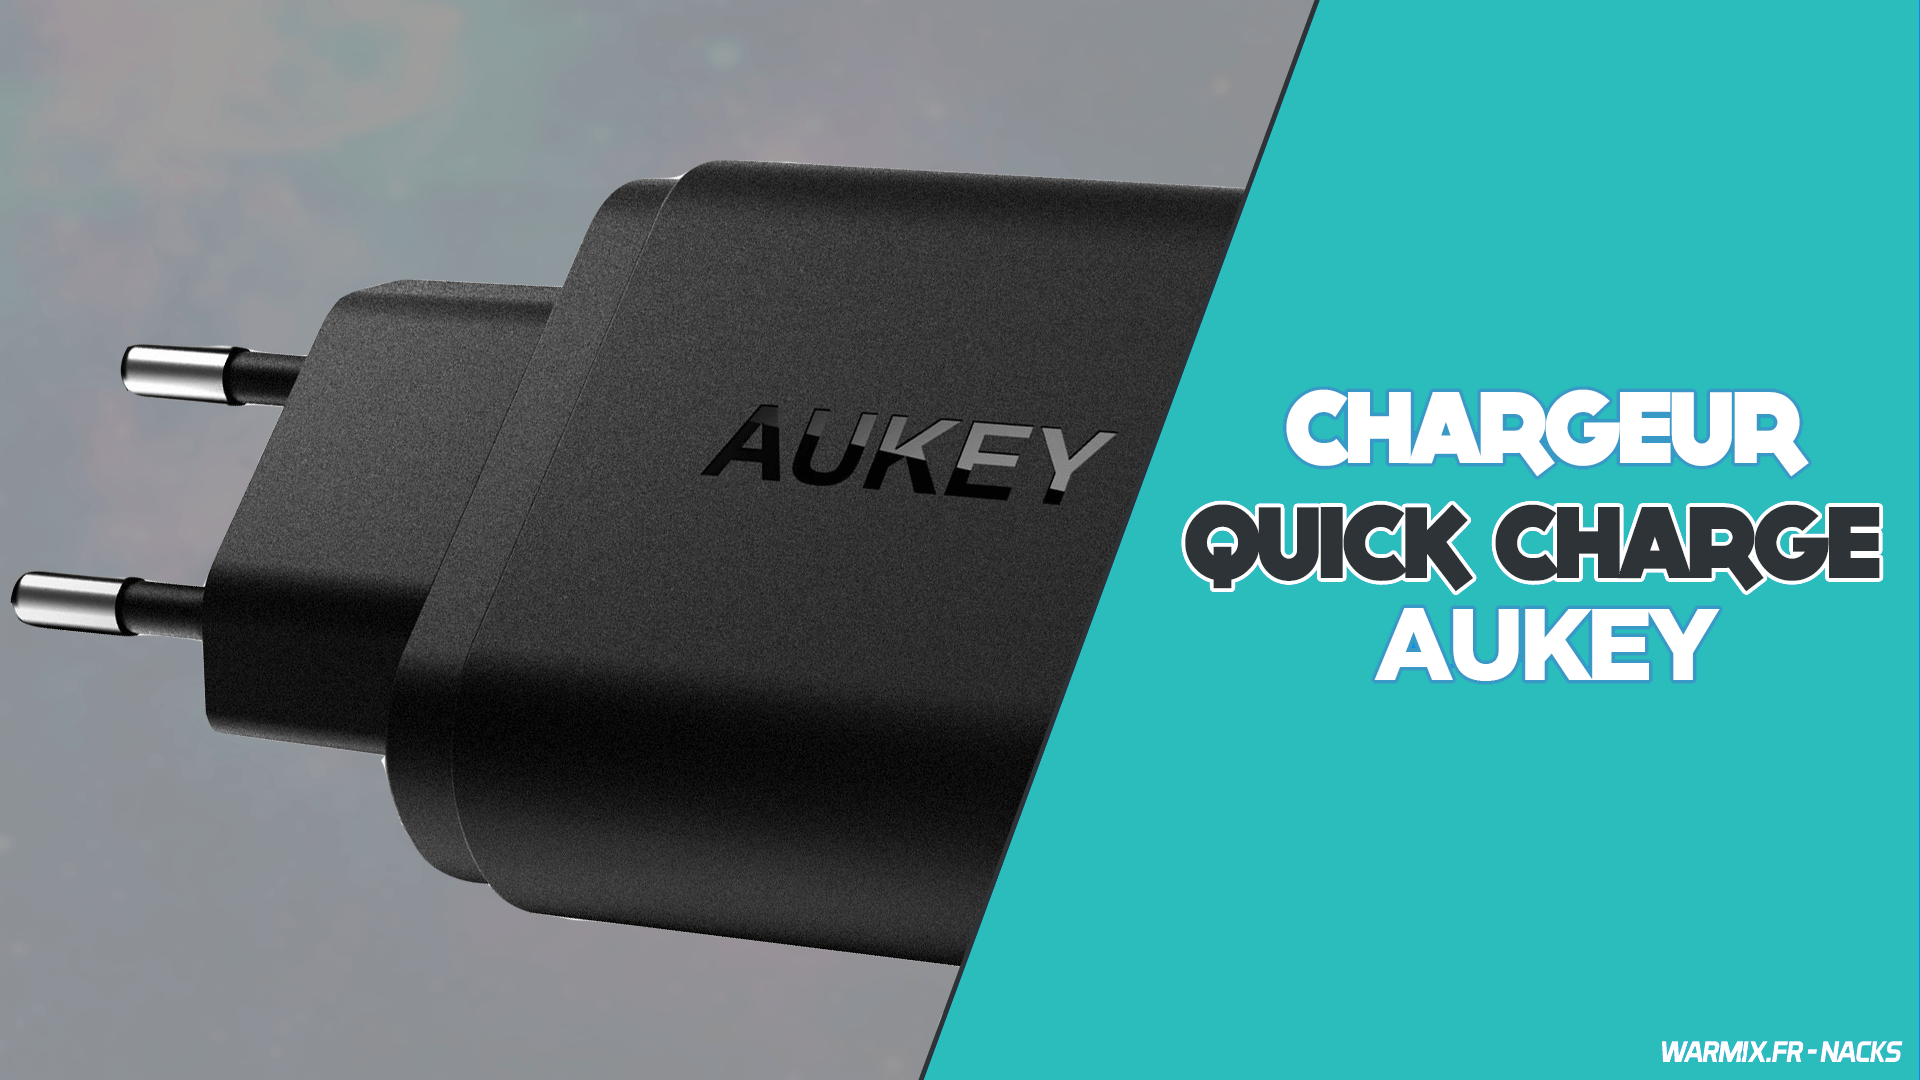 minia-article-chargeur-aukey quick charge 3.0